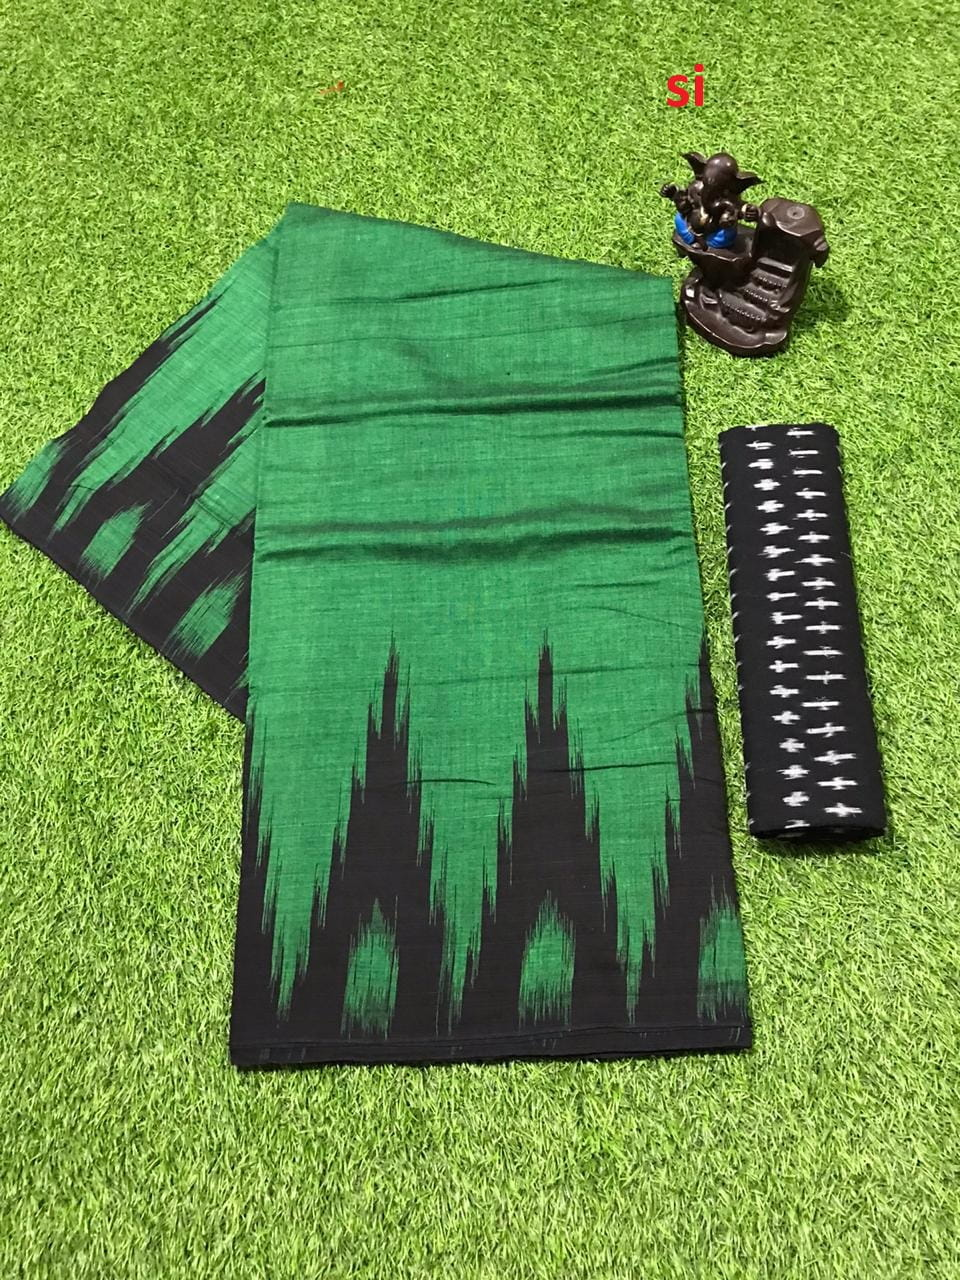 pure-mercerized-cotton-saree-green-color.jpeg